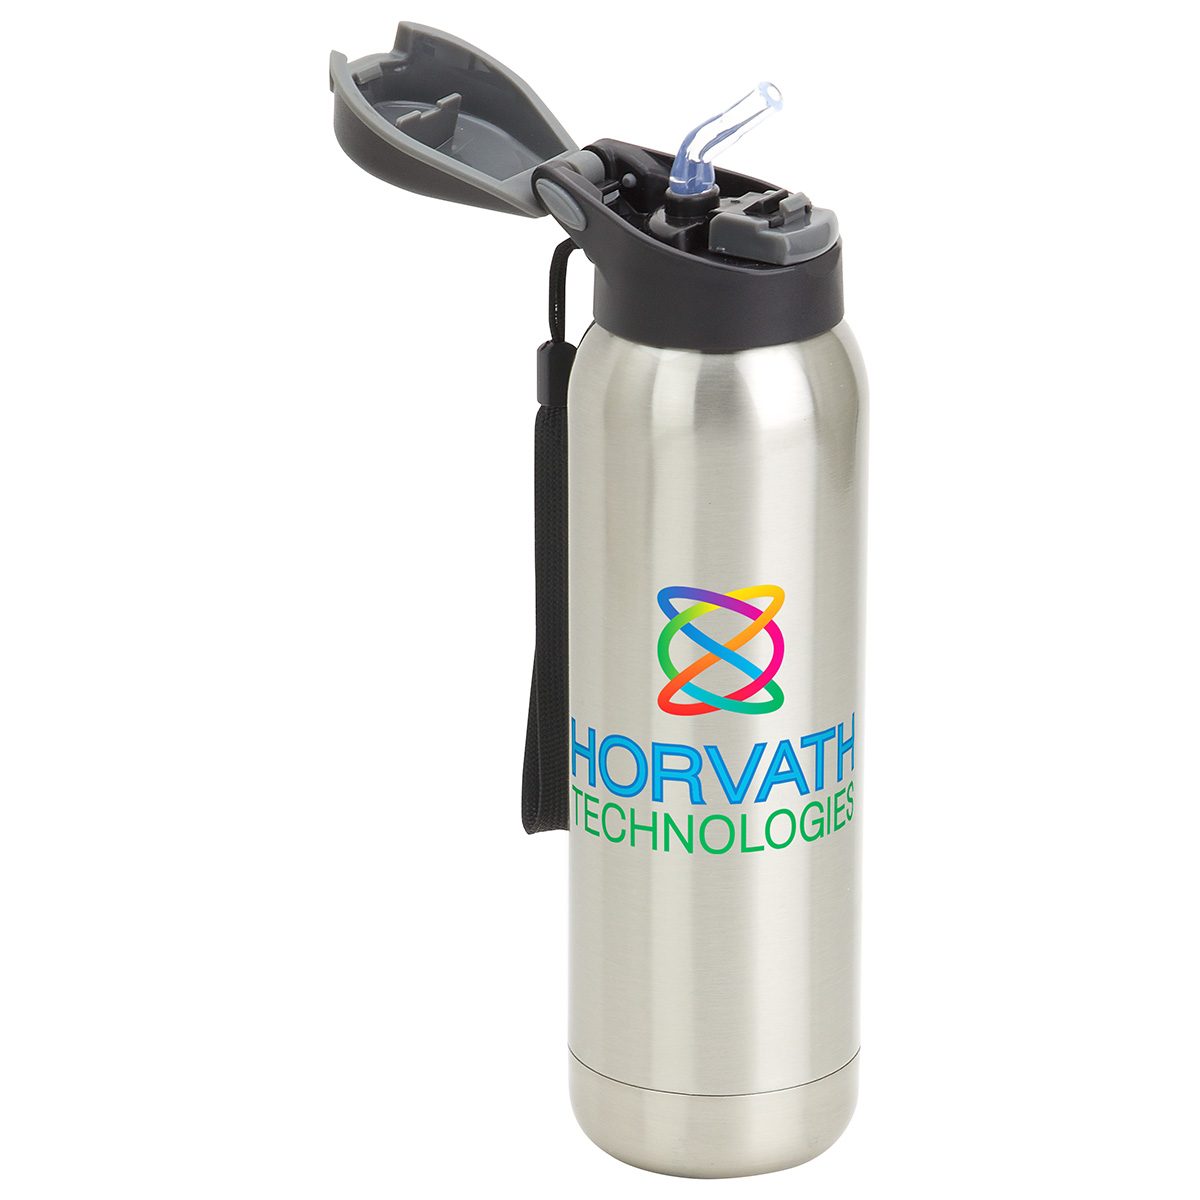 Stratford 17 oz Pop-Top Vacuum Insulated Stainless Steel Bottle, DBT-ST17, 1 Colour Imprint